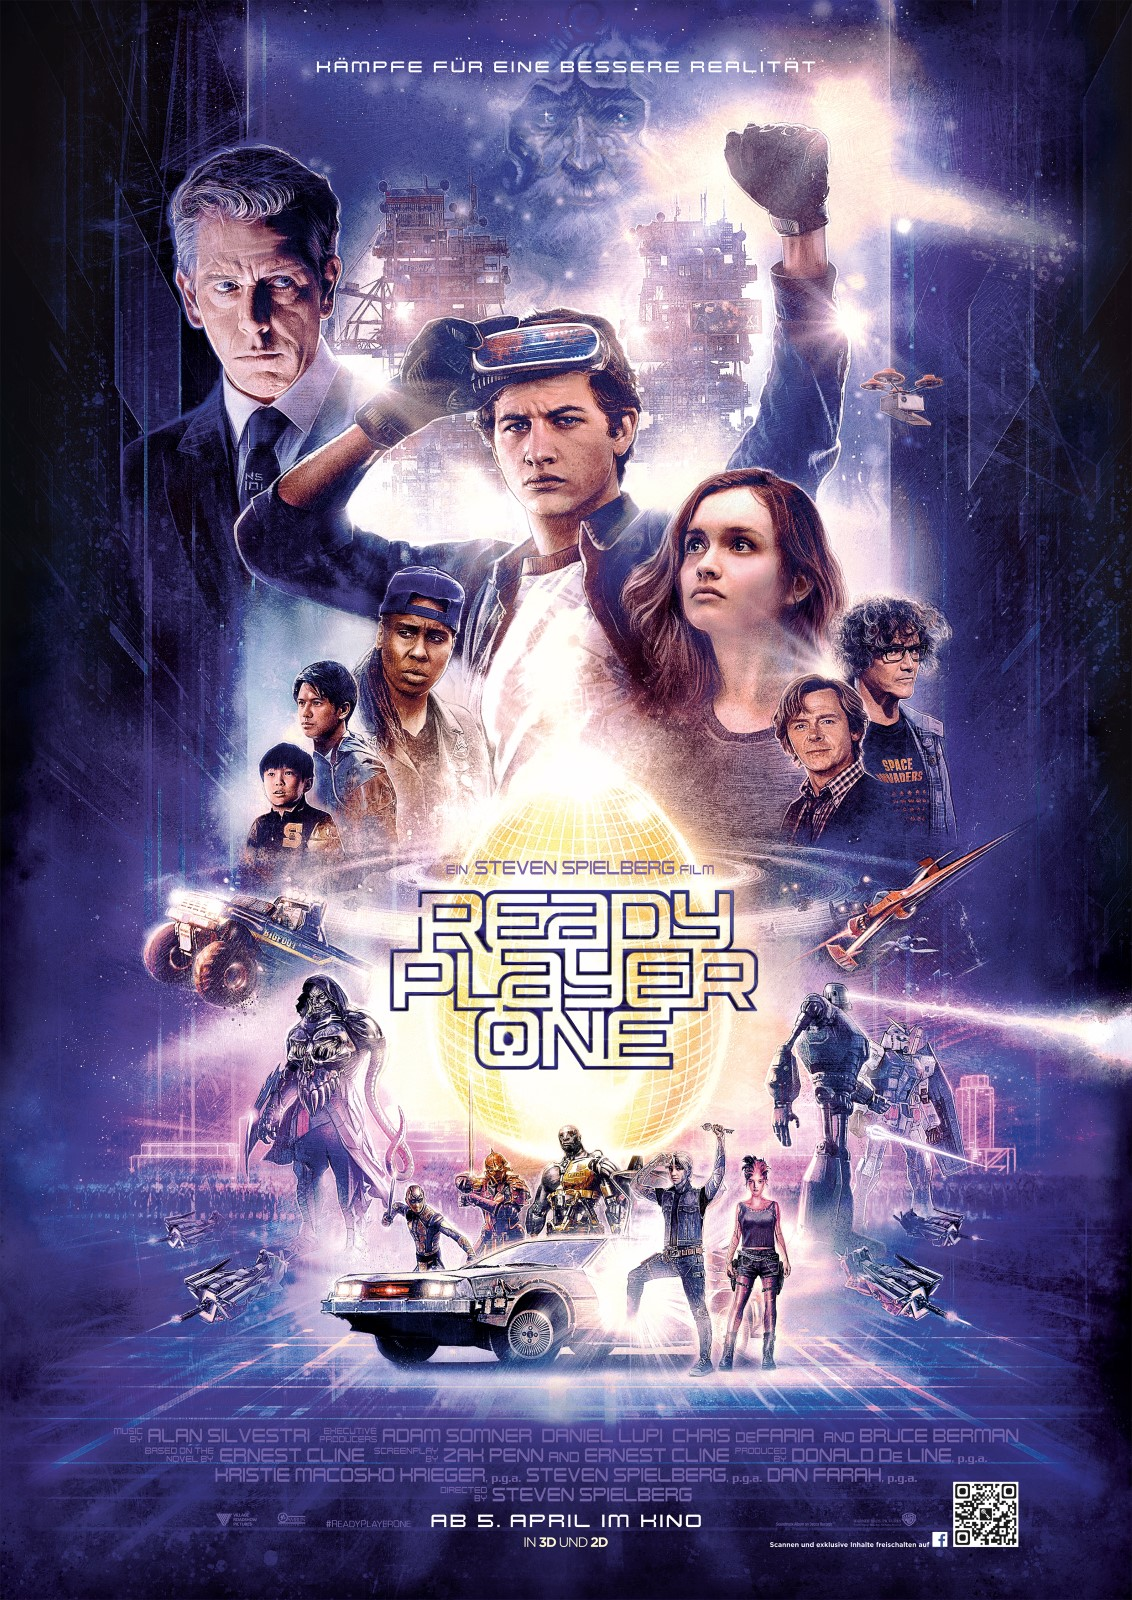 Ready Player One Film 2018 Filmstartsde